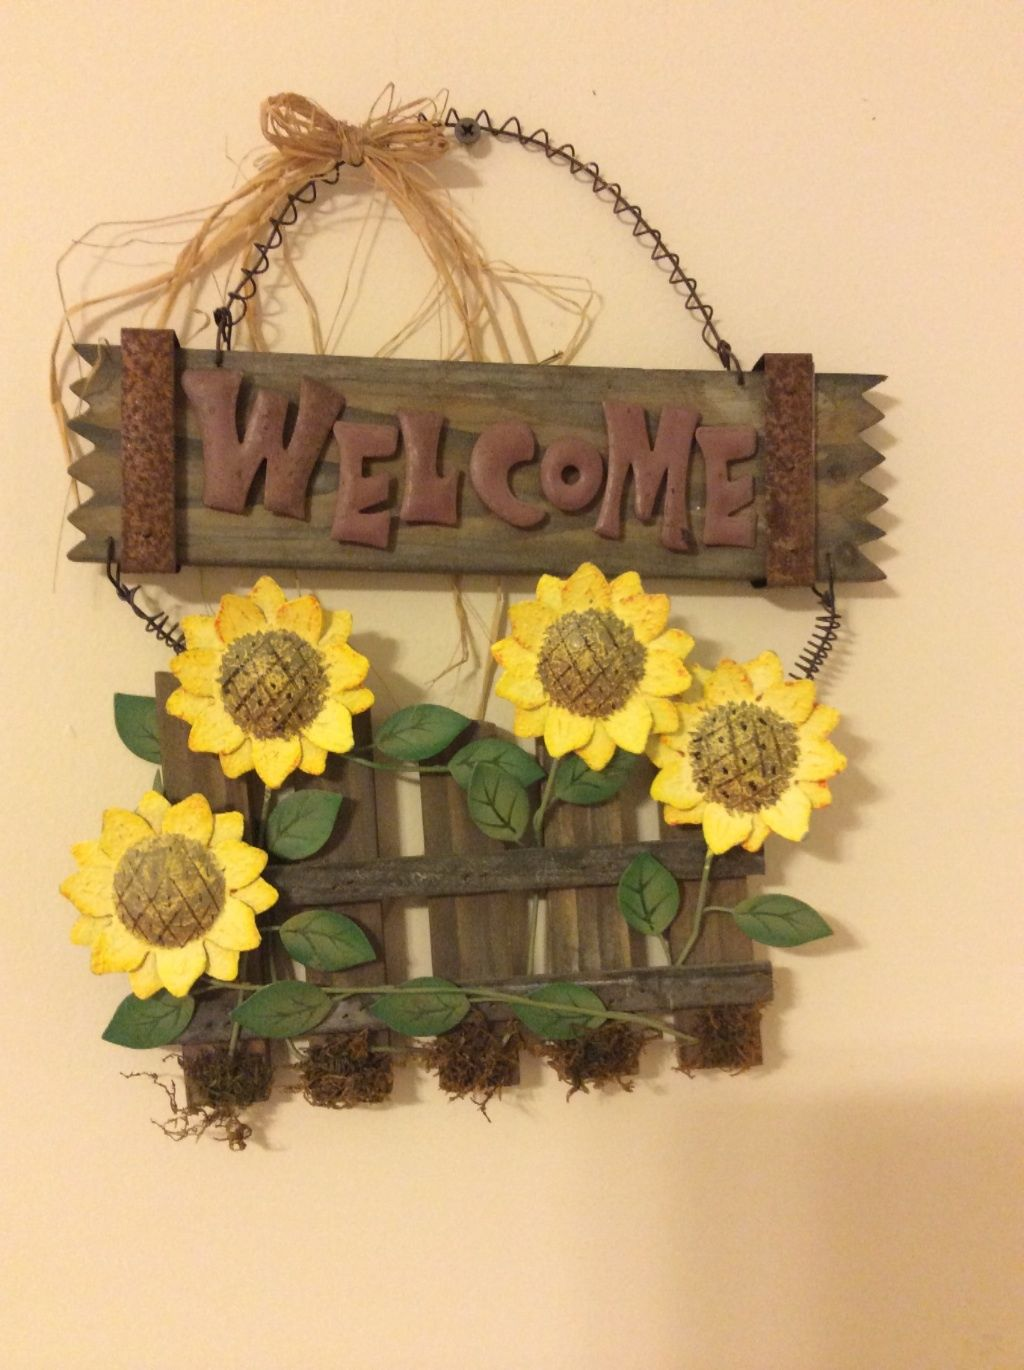 Vintage Welcome Wall Plaque Wood with Metal and similar items